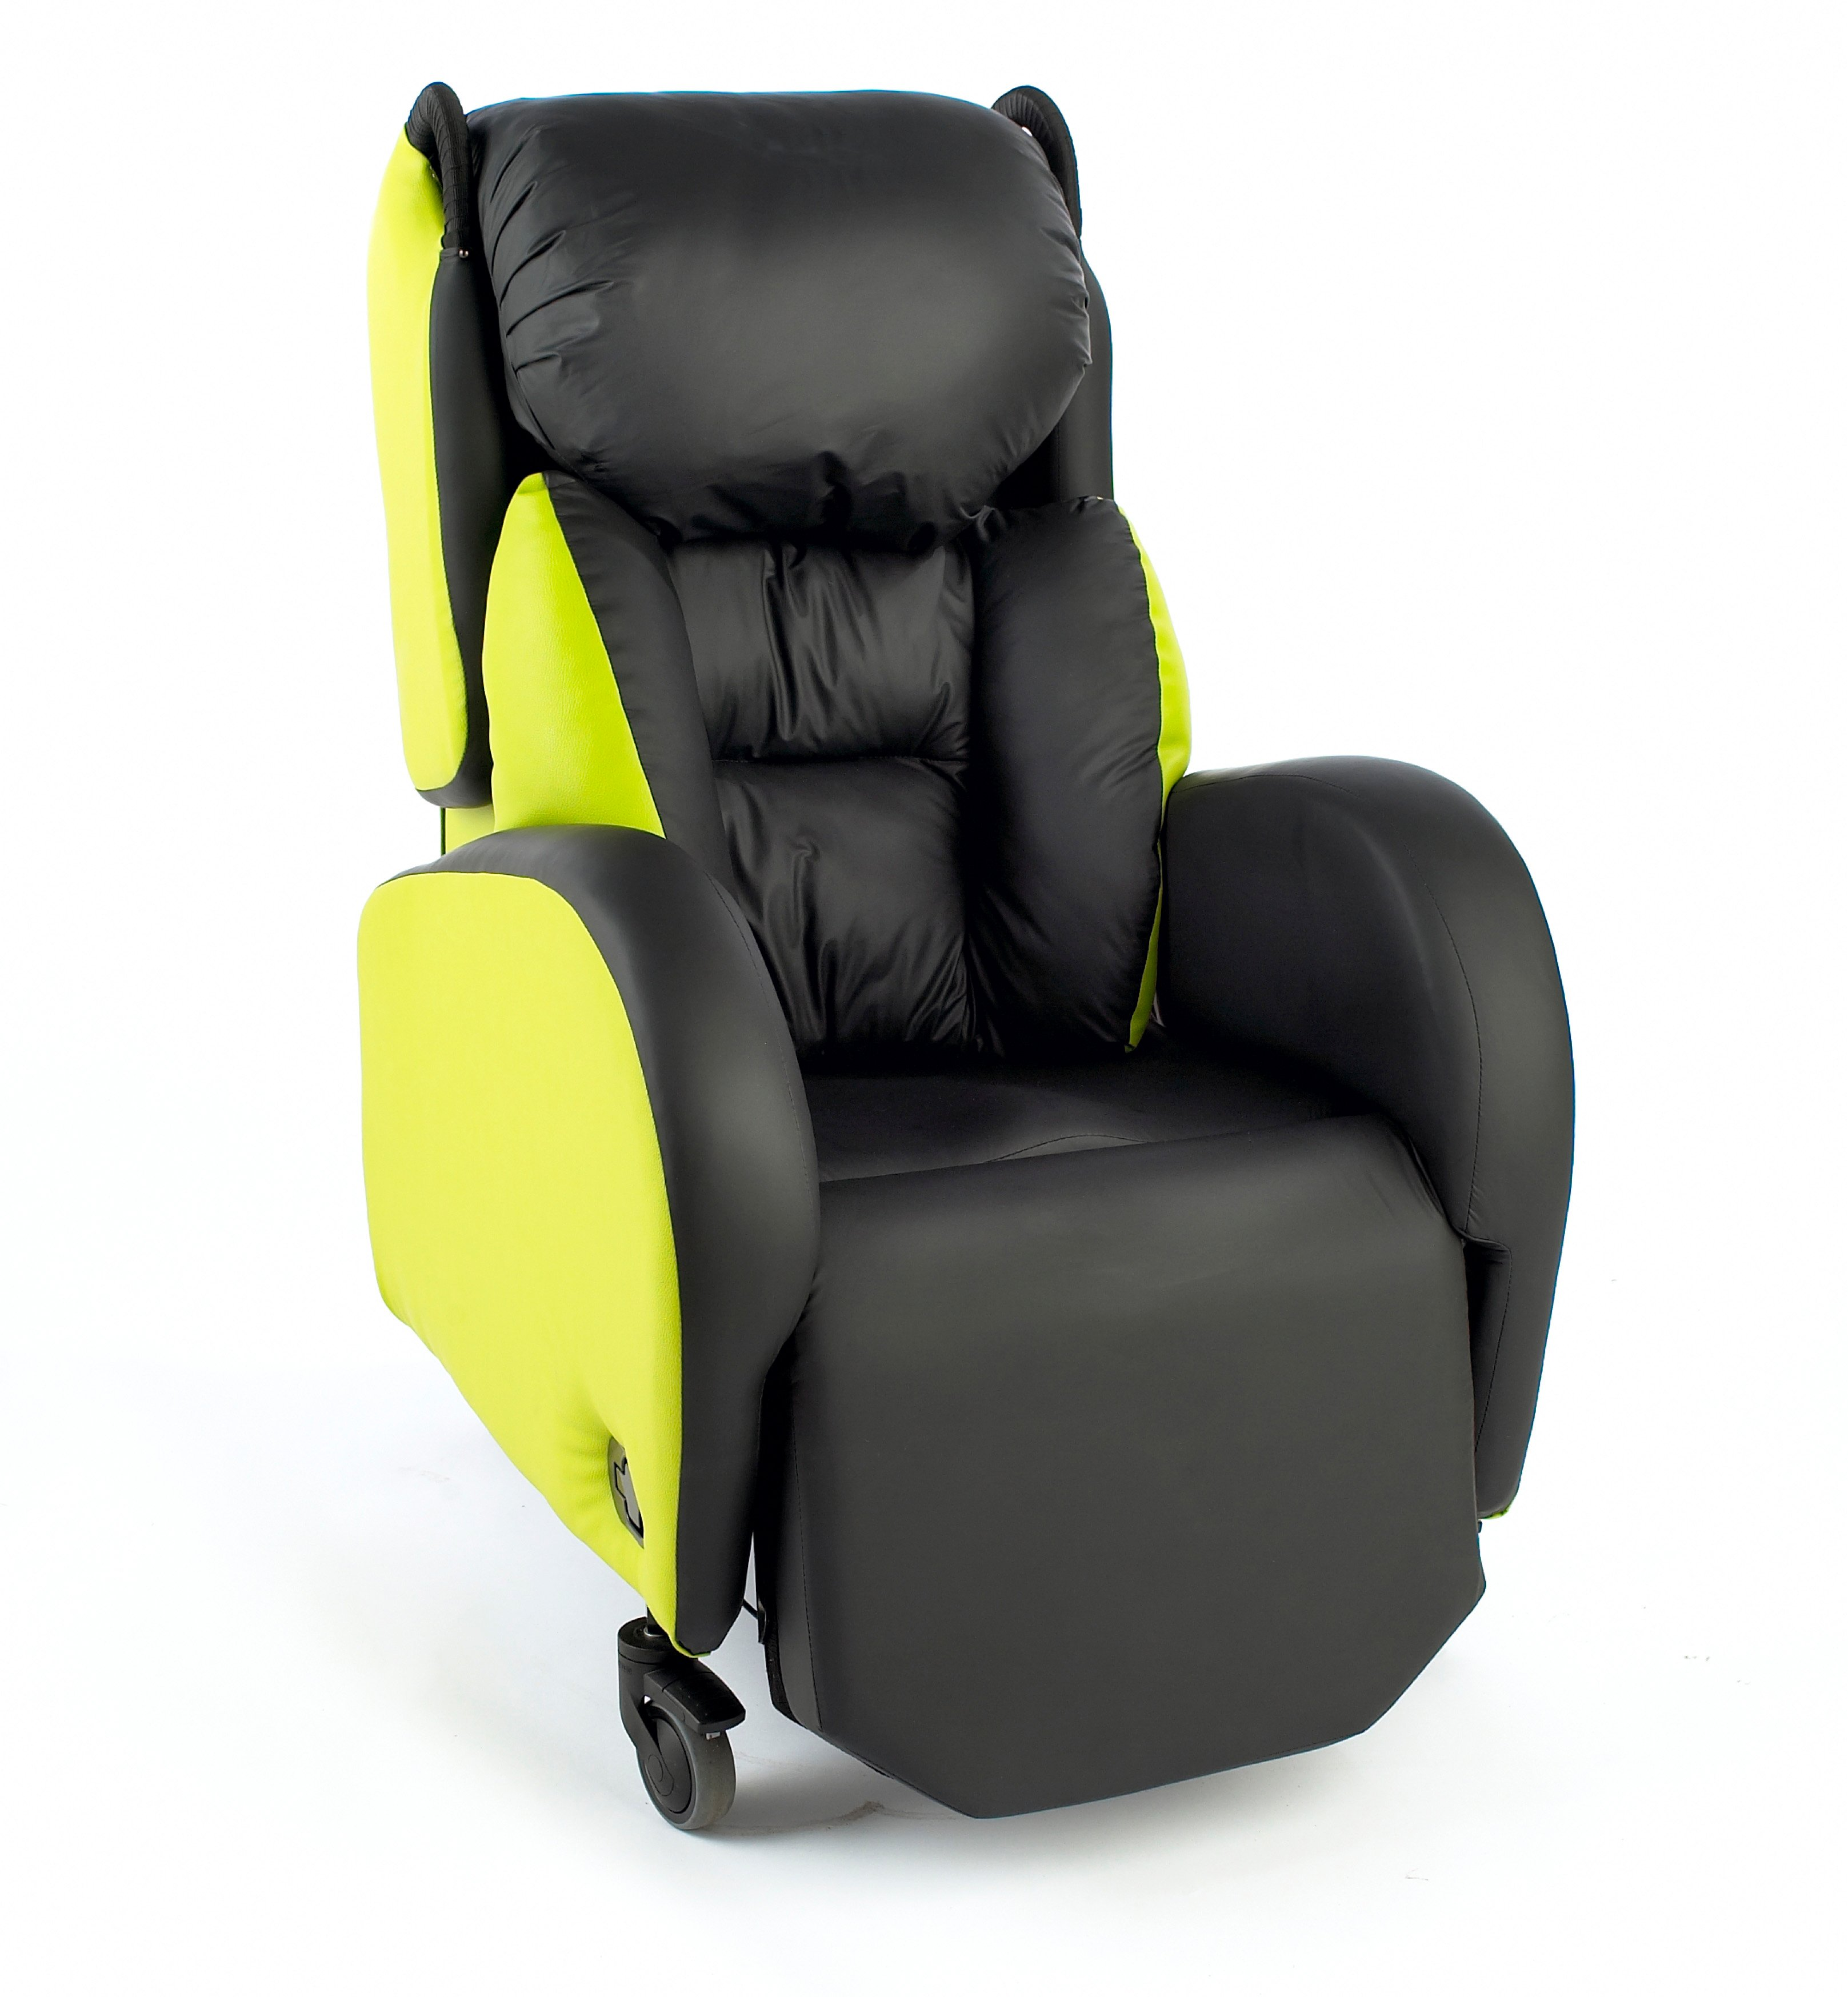 A Legacy care chair with lateral supports down either side of the backrest is a great chairs for people with multiple sclerosis